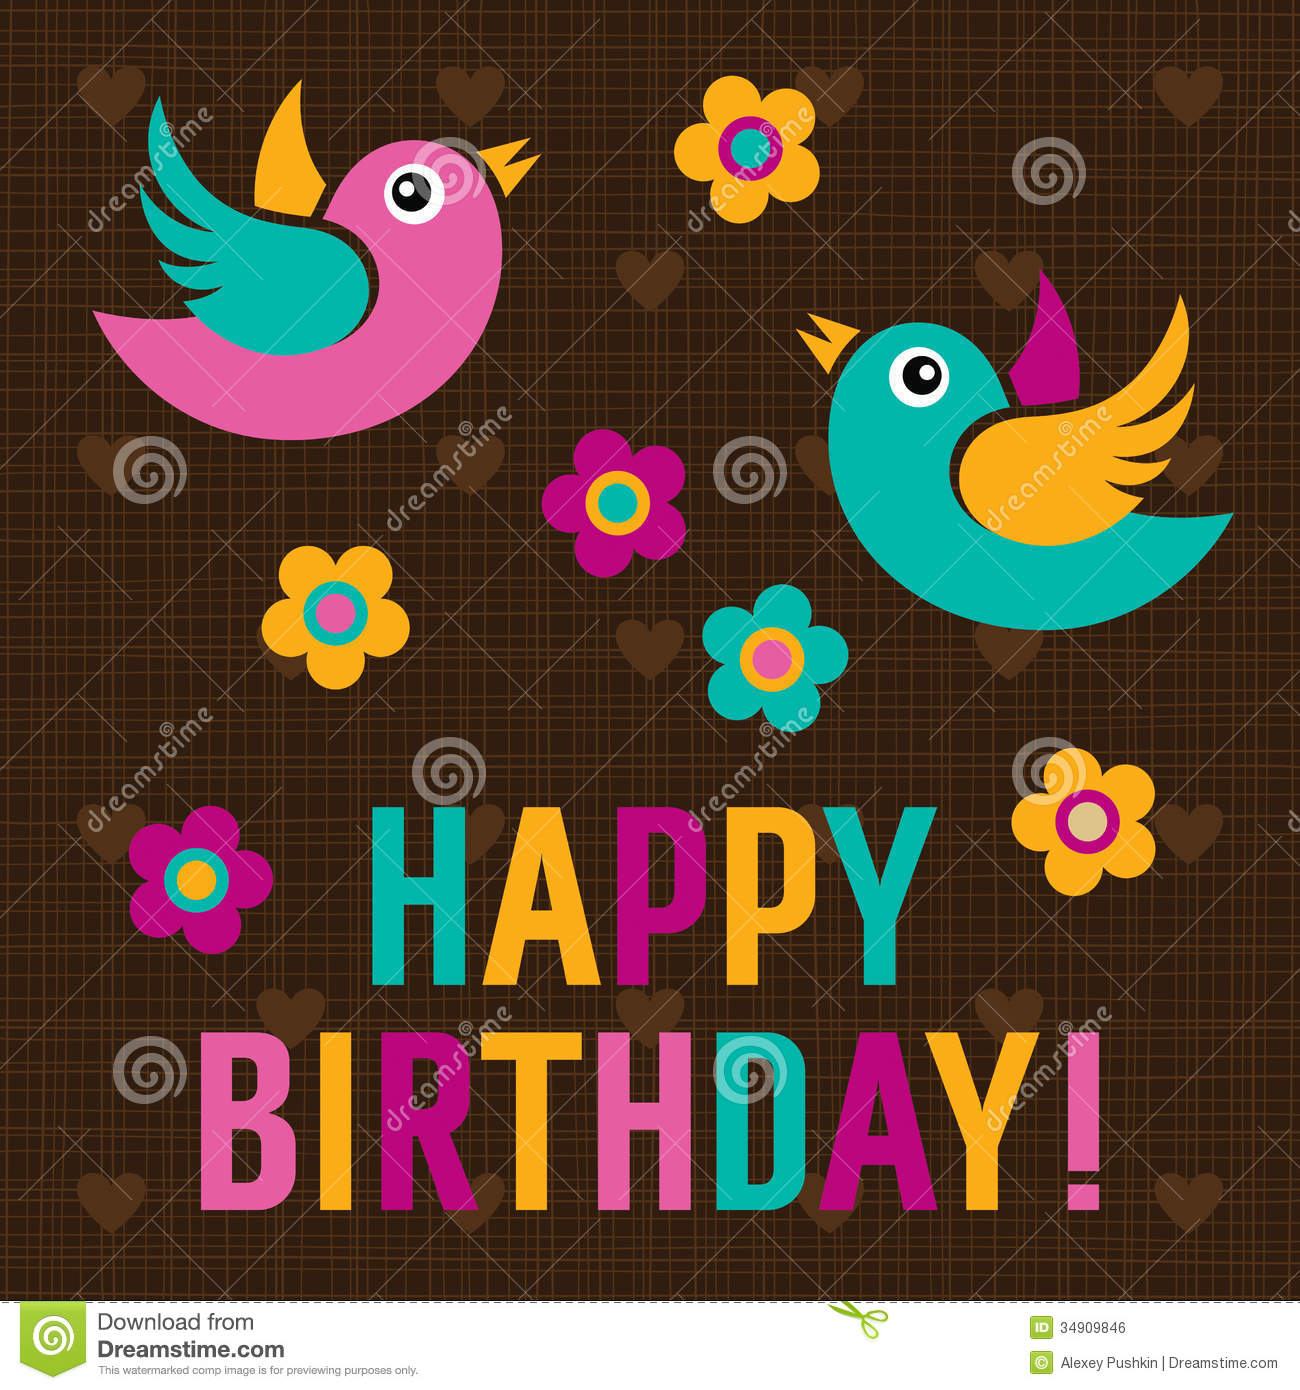 Happy Birthday Card With Cute Birds Royalty Free Image – Birthday Card with Pictures